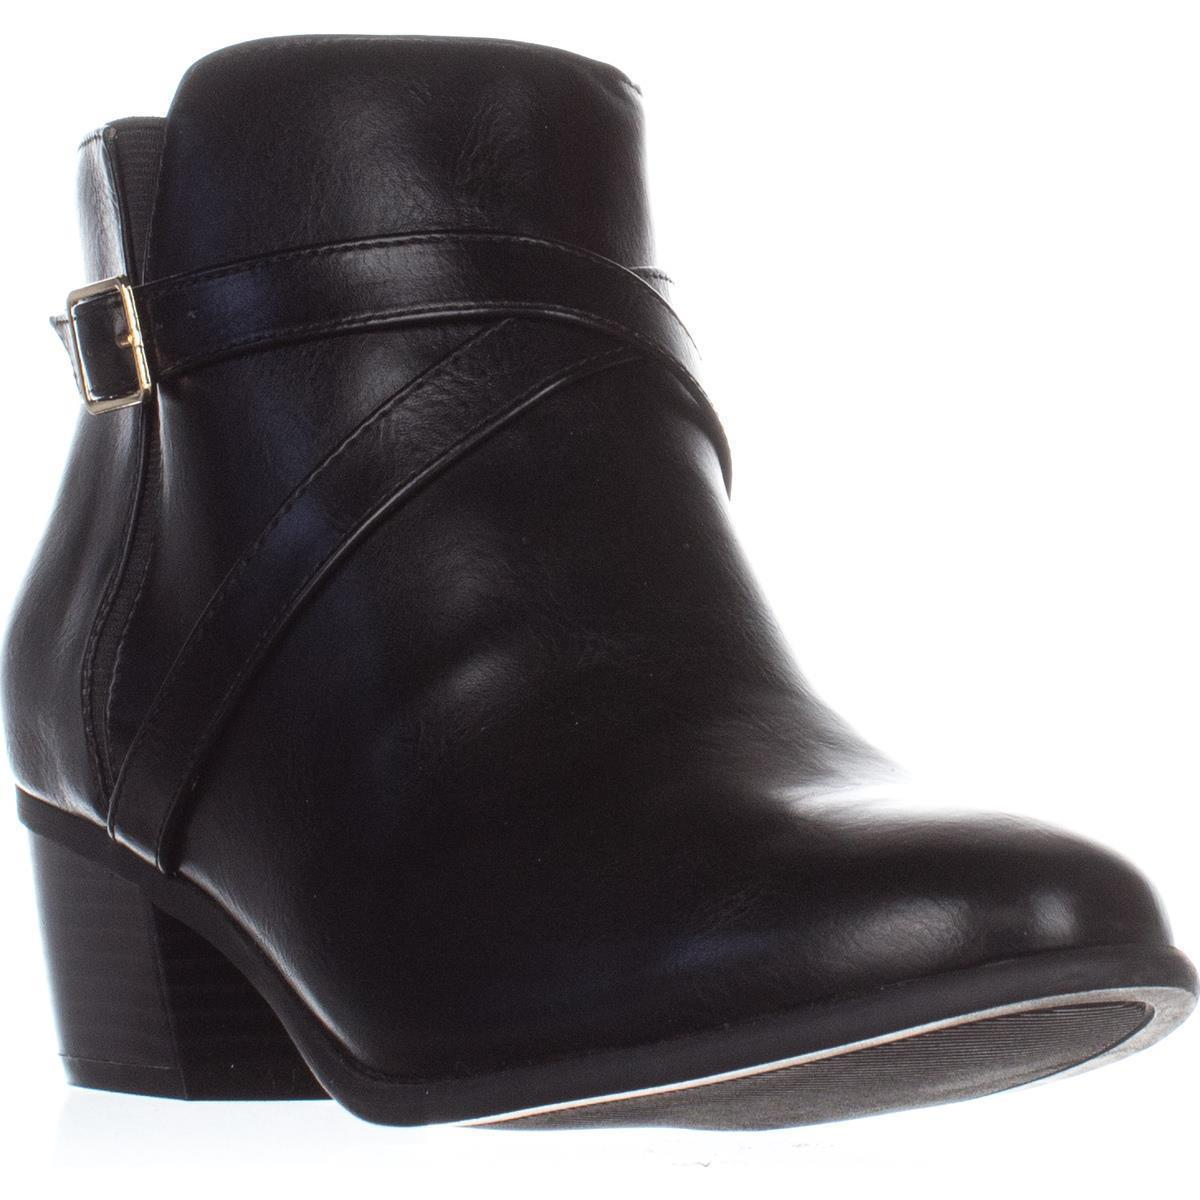 Womens KS35 Falonn Ankle Boots, Black